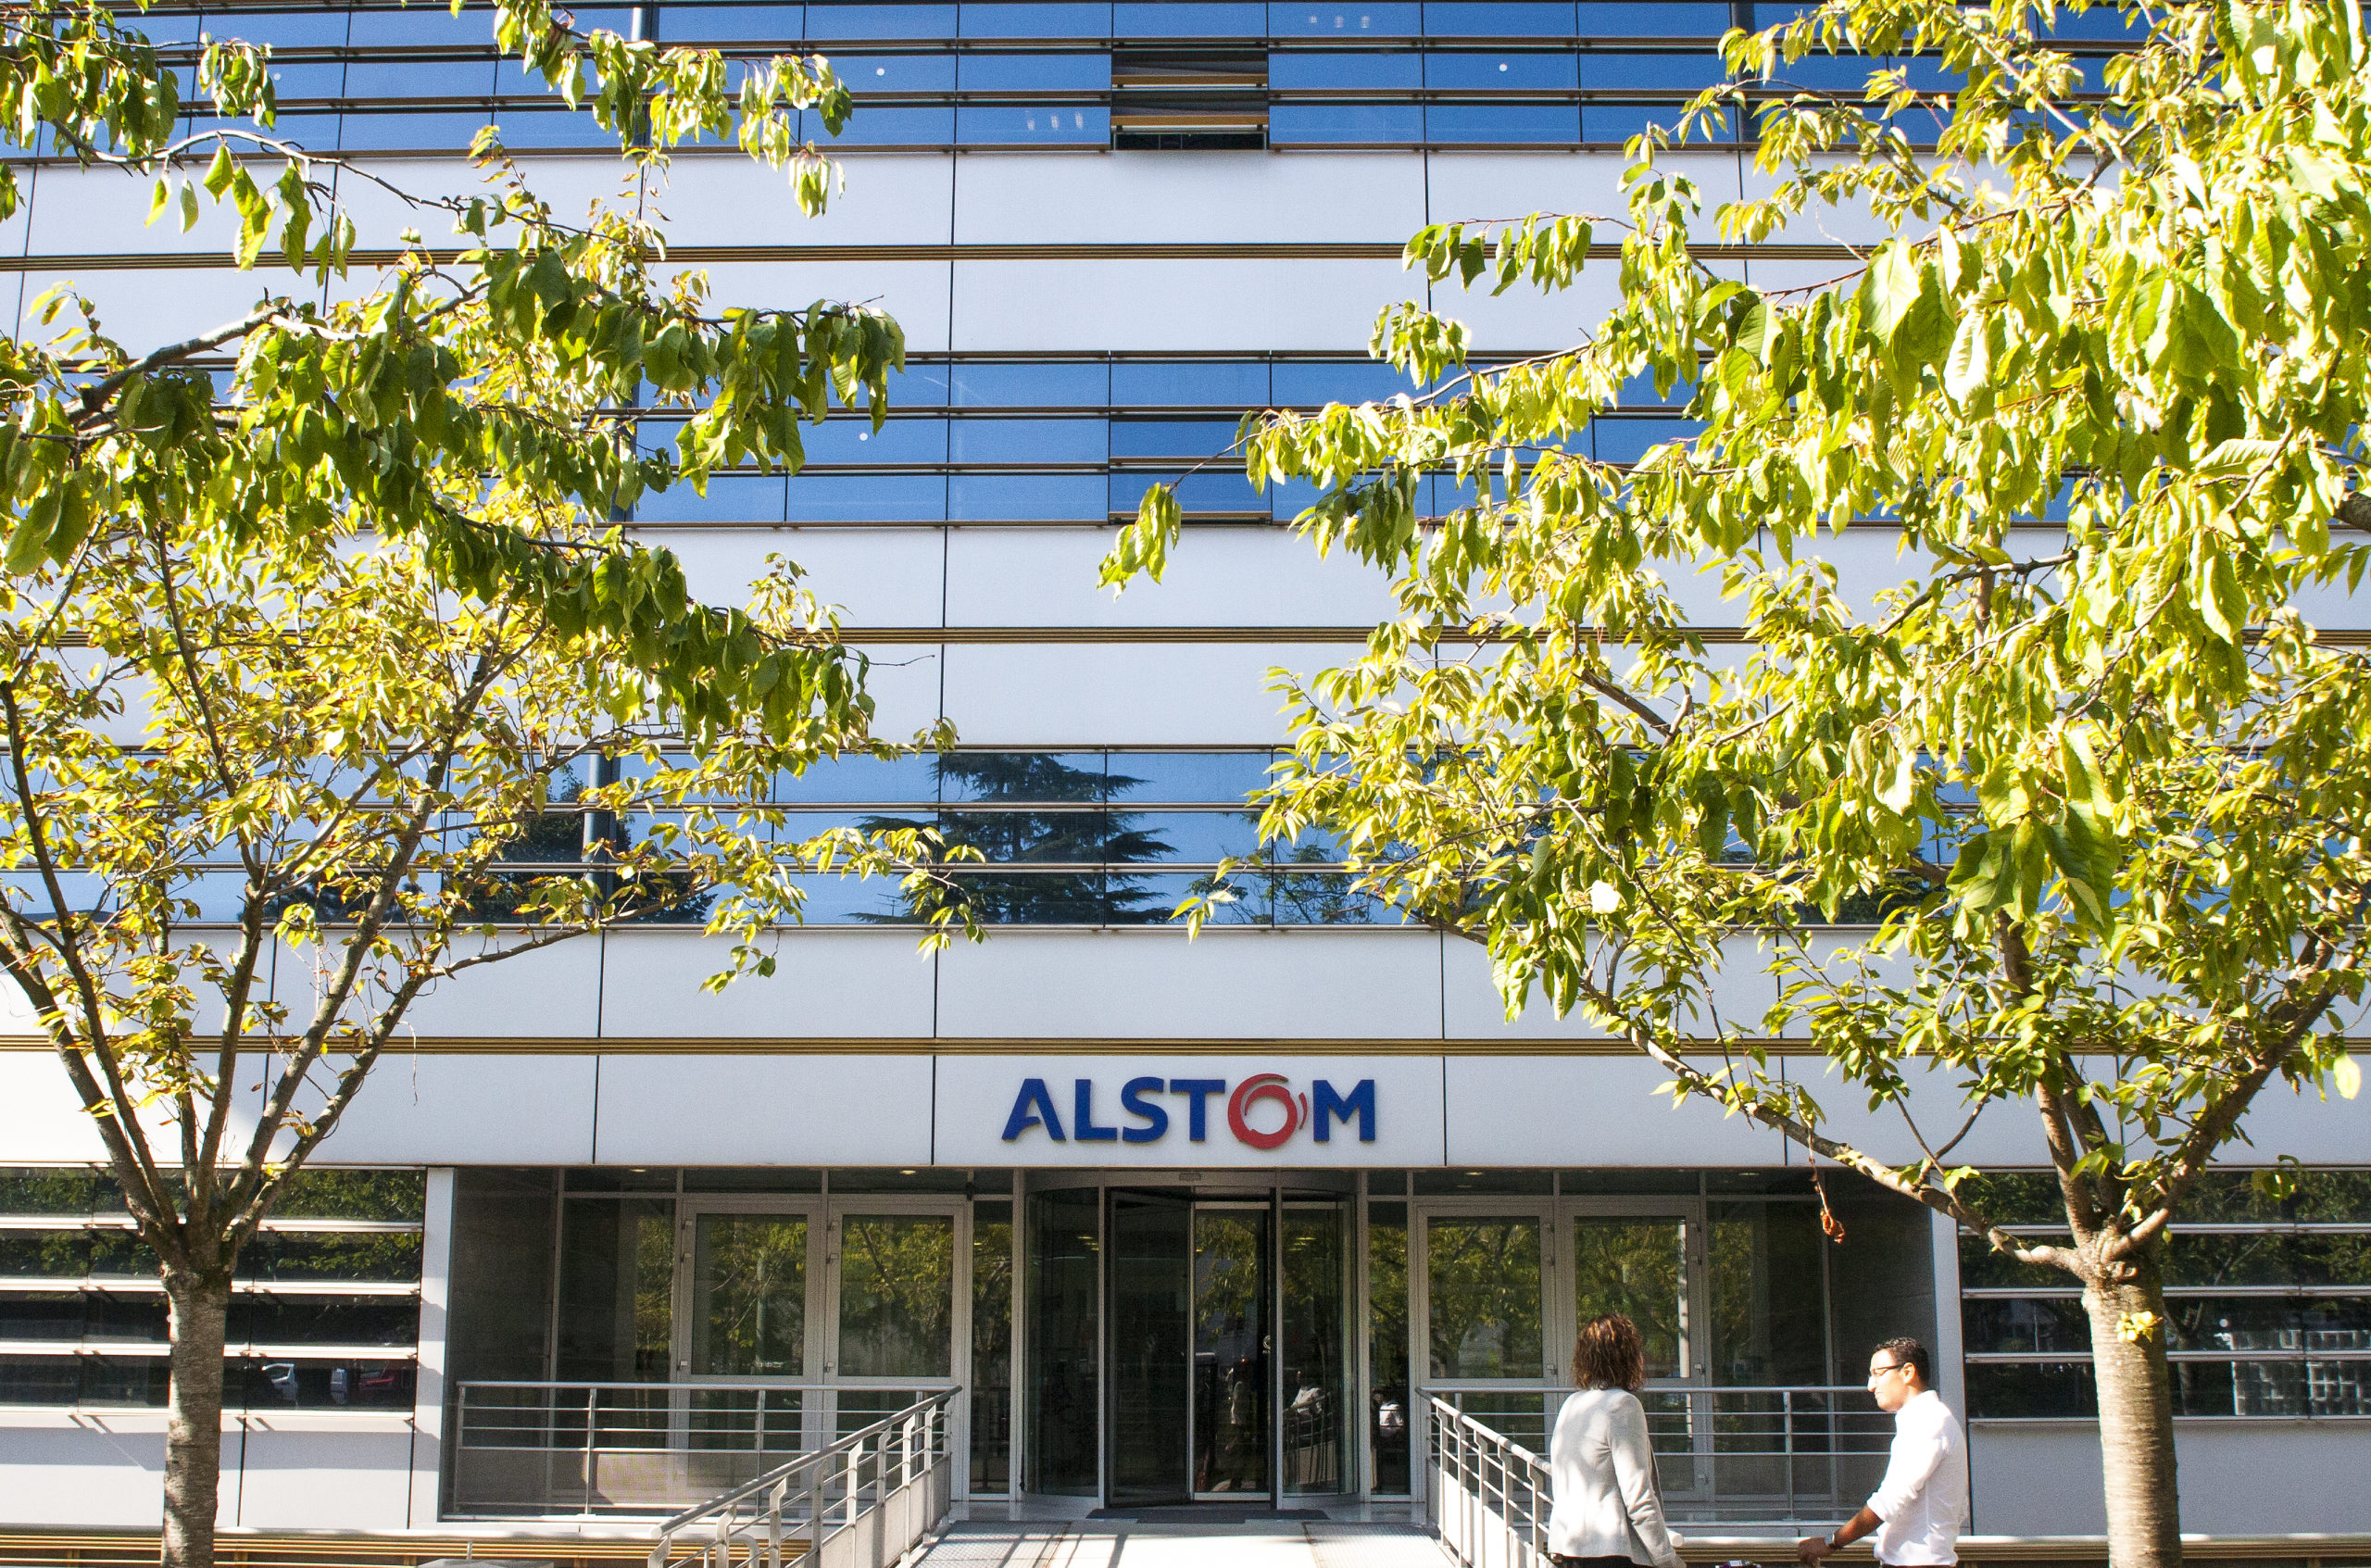 Alstom headquarters in France